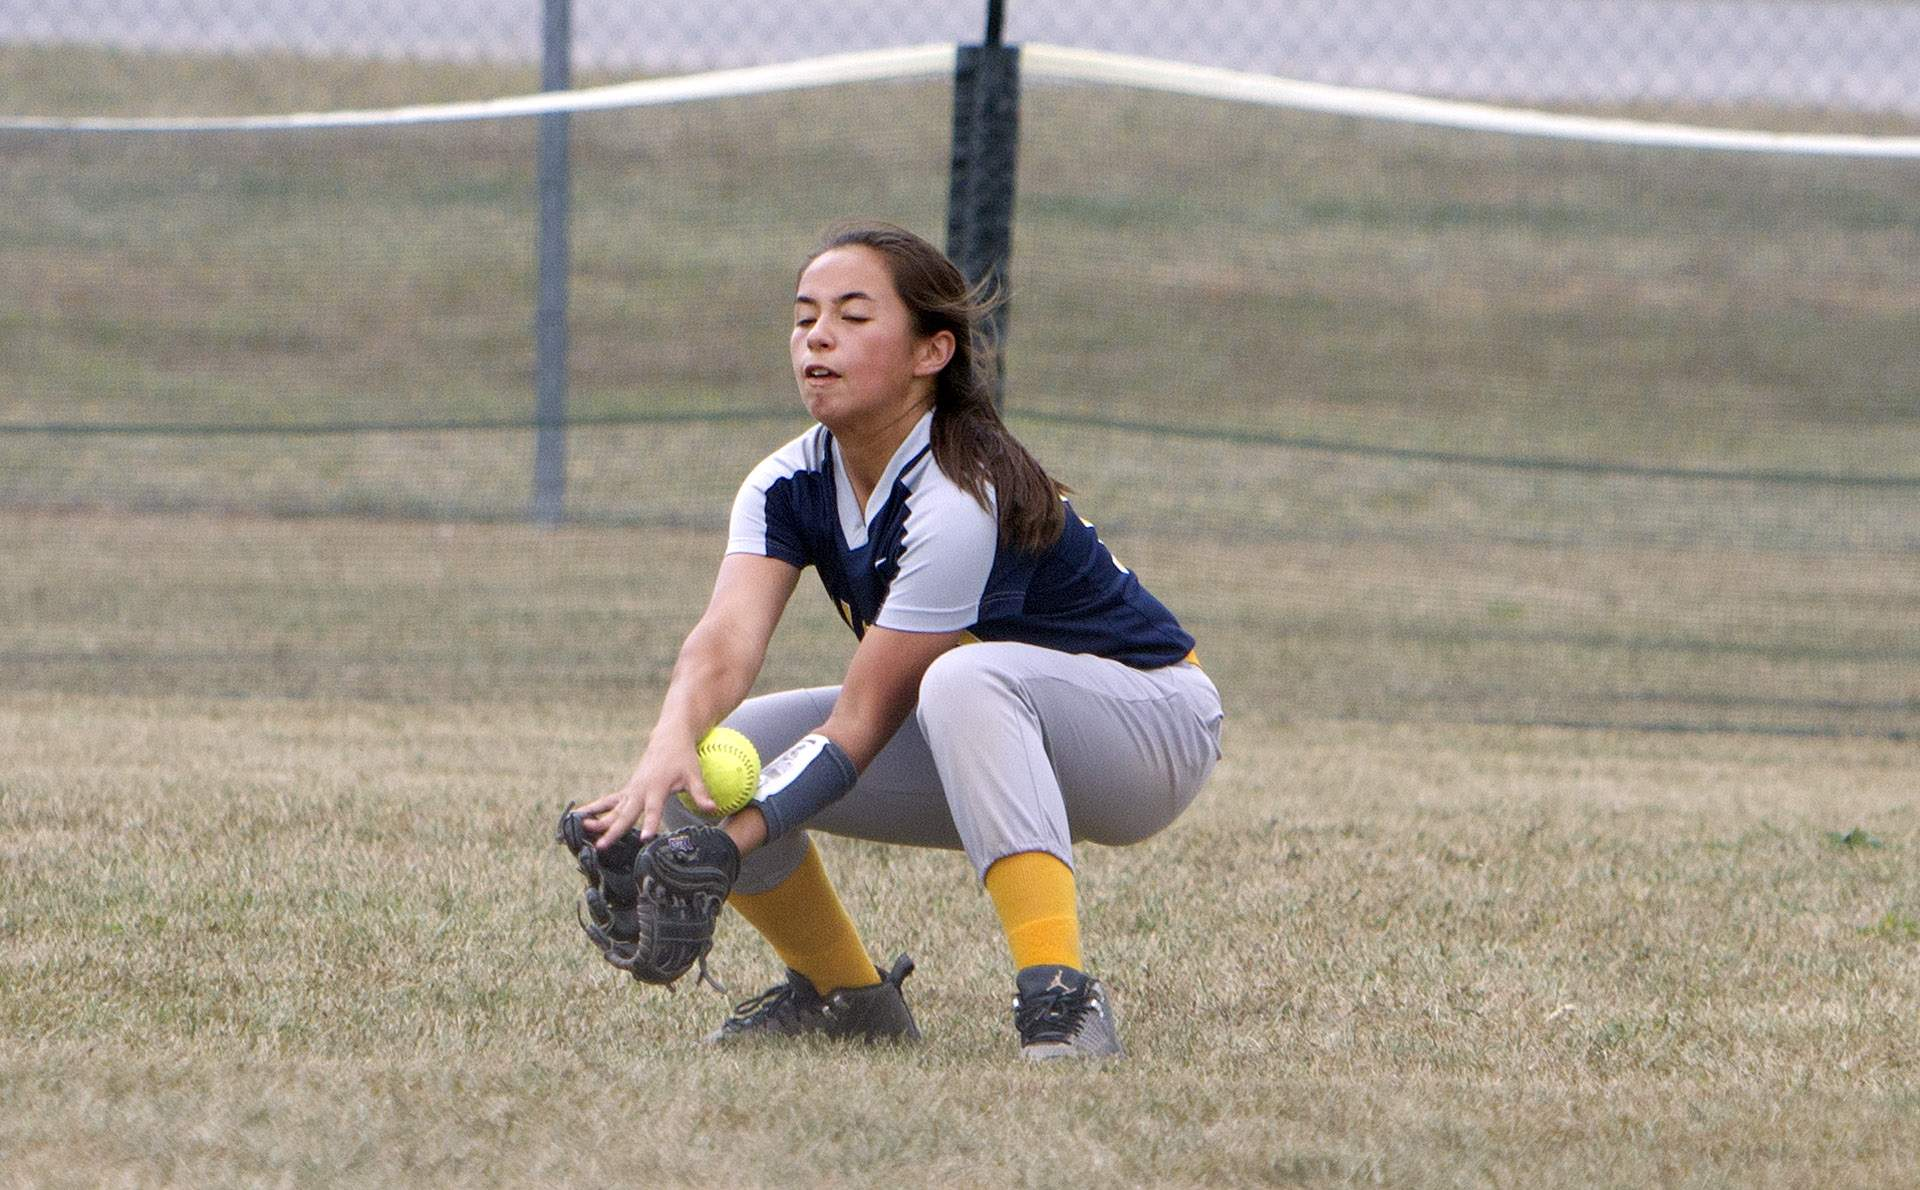 Ava Wong fields a ball in left field.